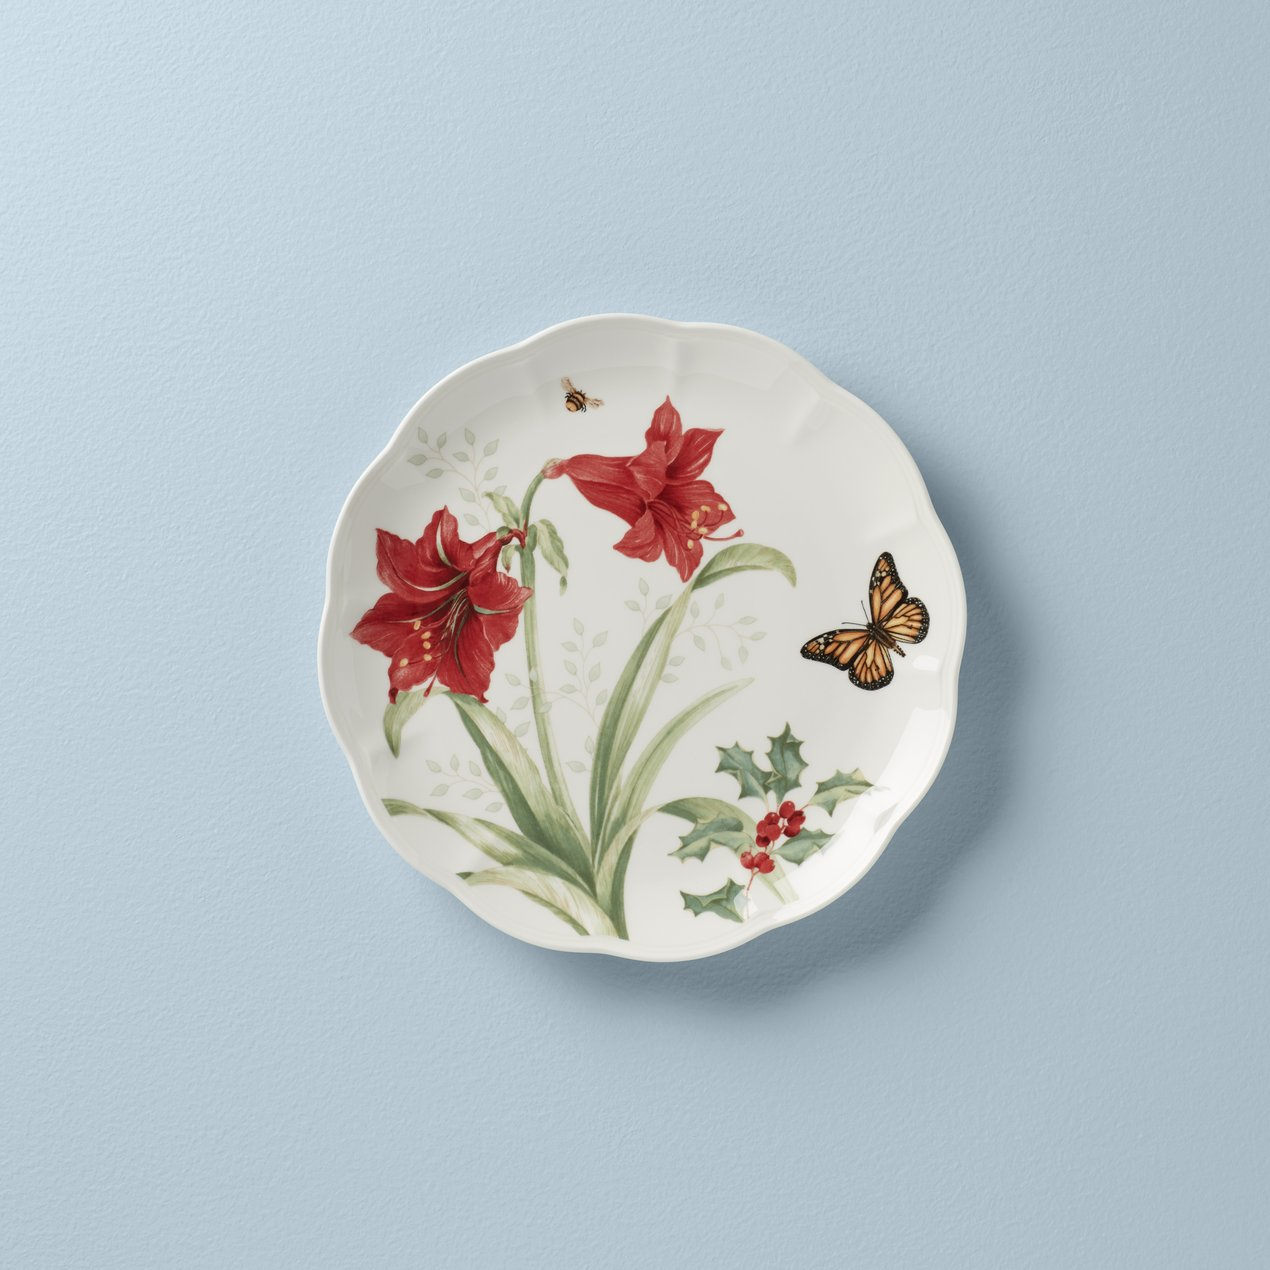 Lenox Butterfly Meadow Holiday Amaryllis